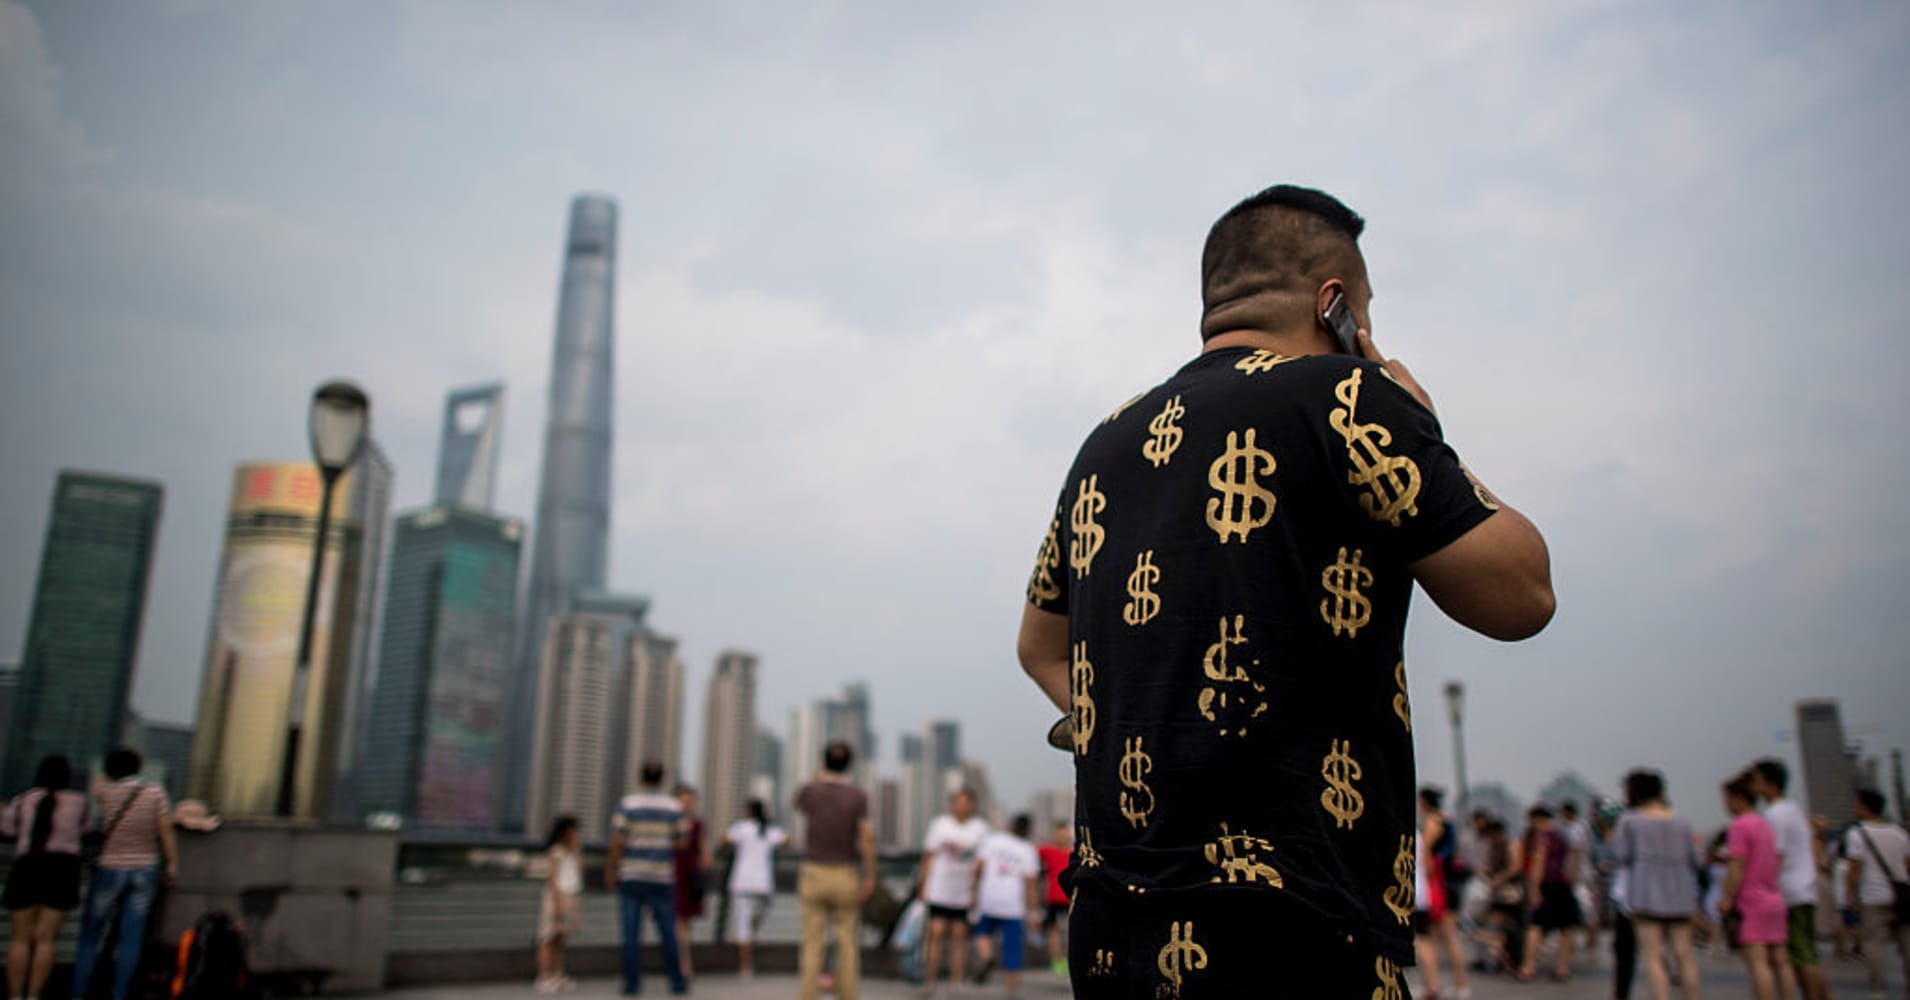 China Q3 GDP in focus amid property bubble worries, as Li flags upside